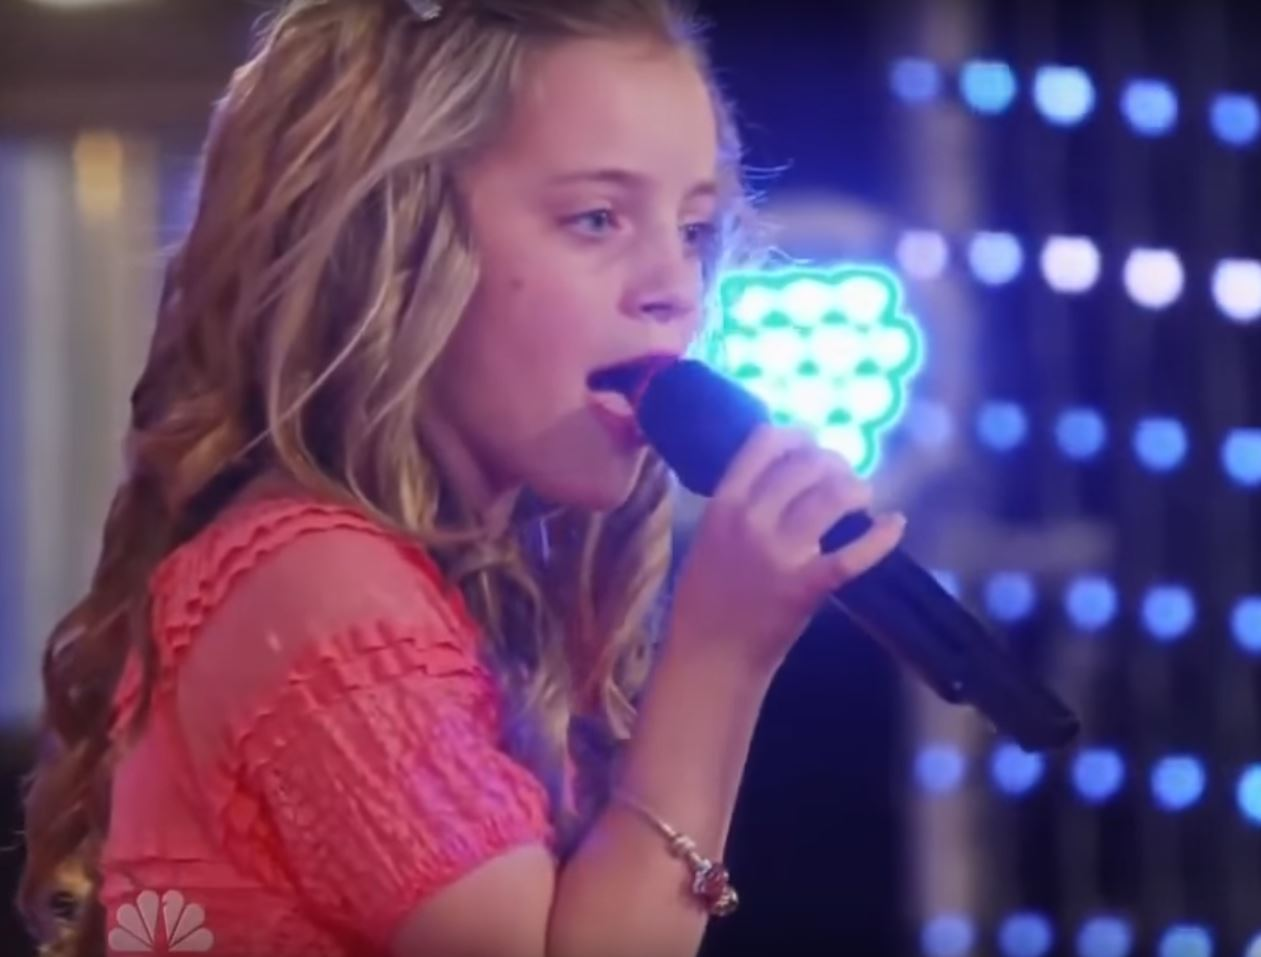 Americas got talent 2017 old ladies - Video 11 Year Old Girl Preaches Hunting To America S Got Talent Judges